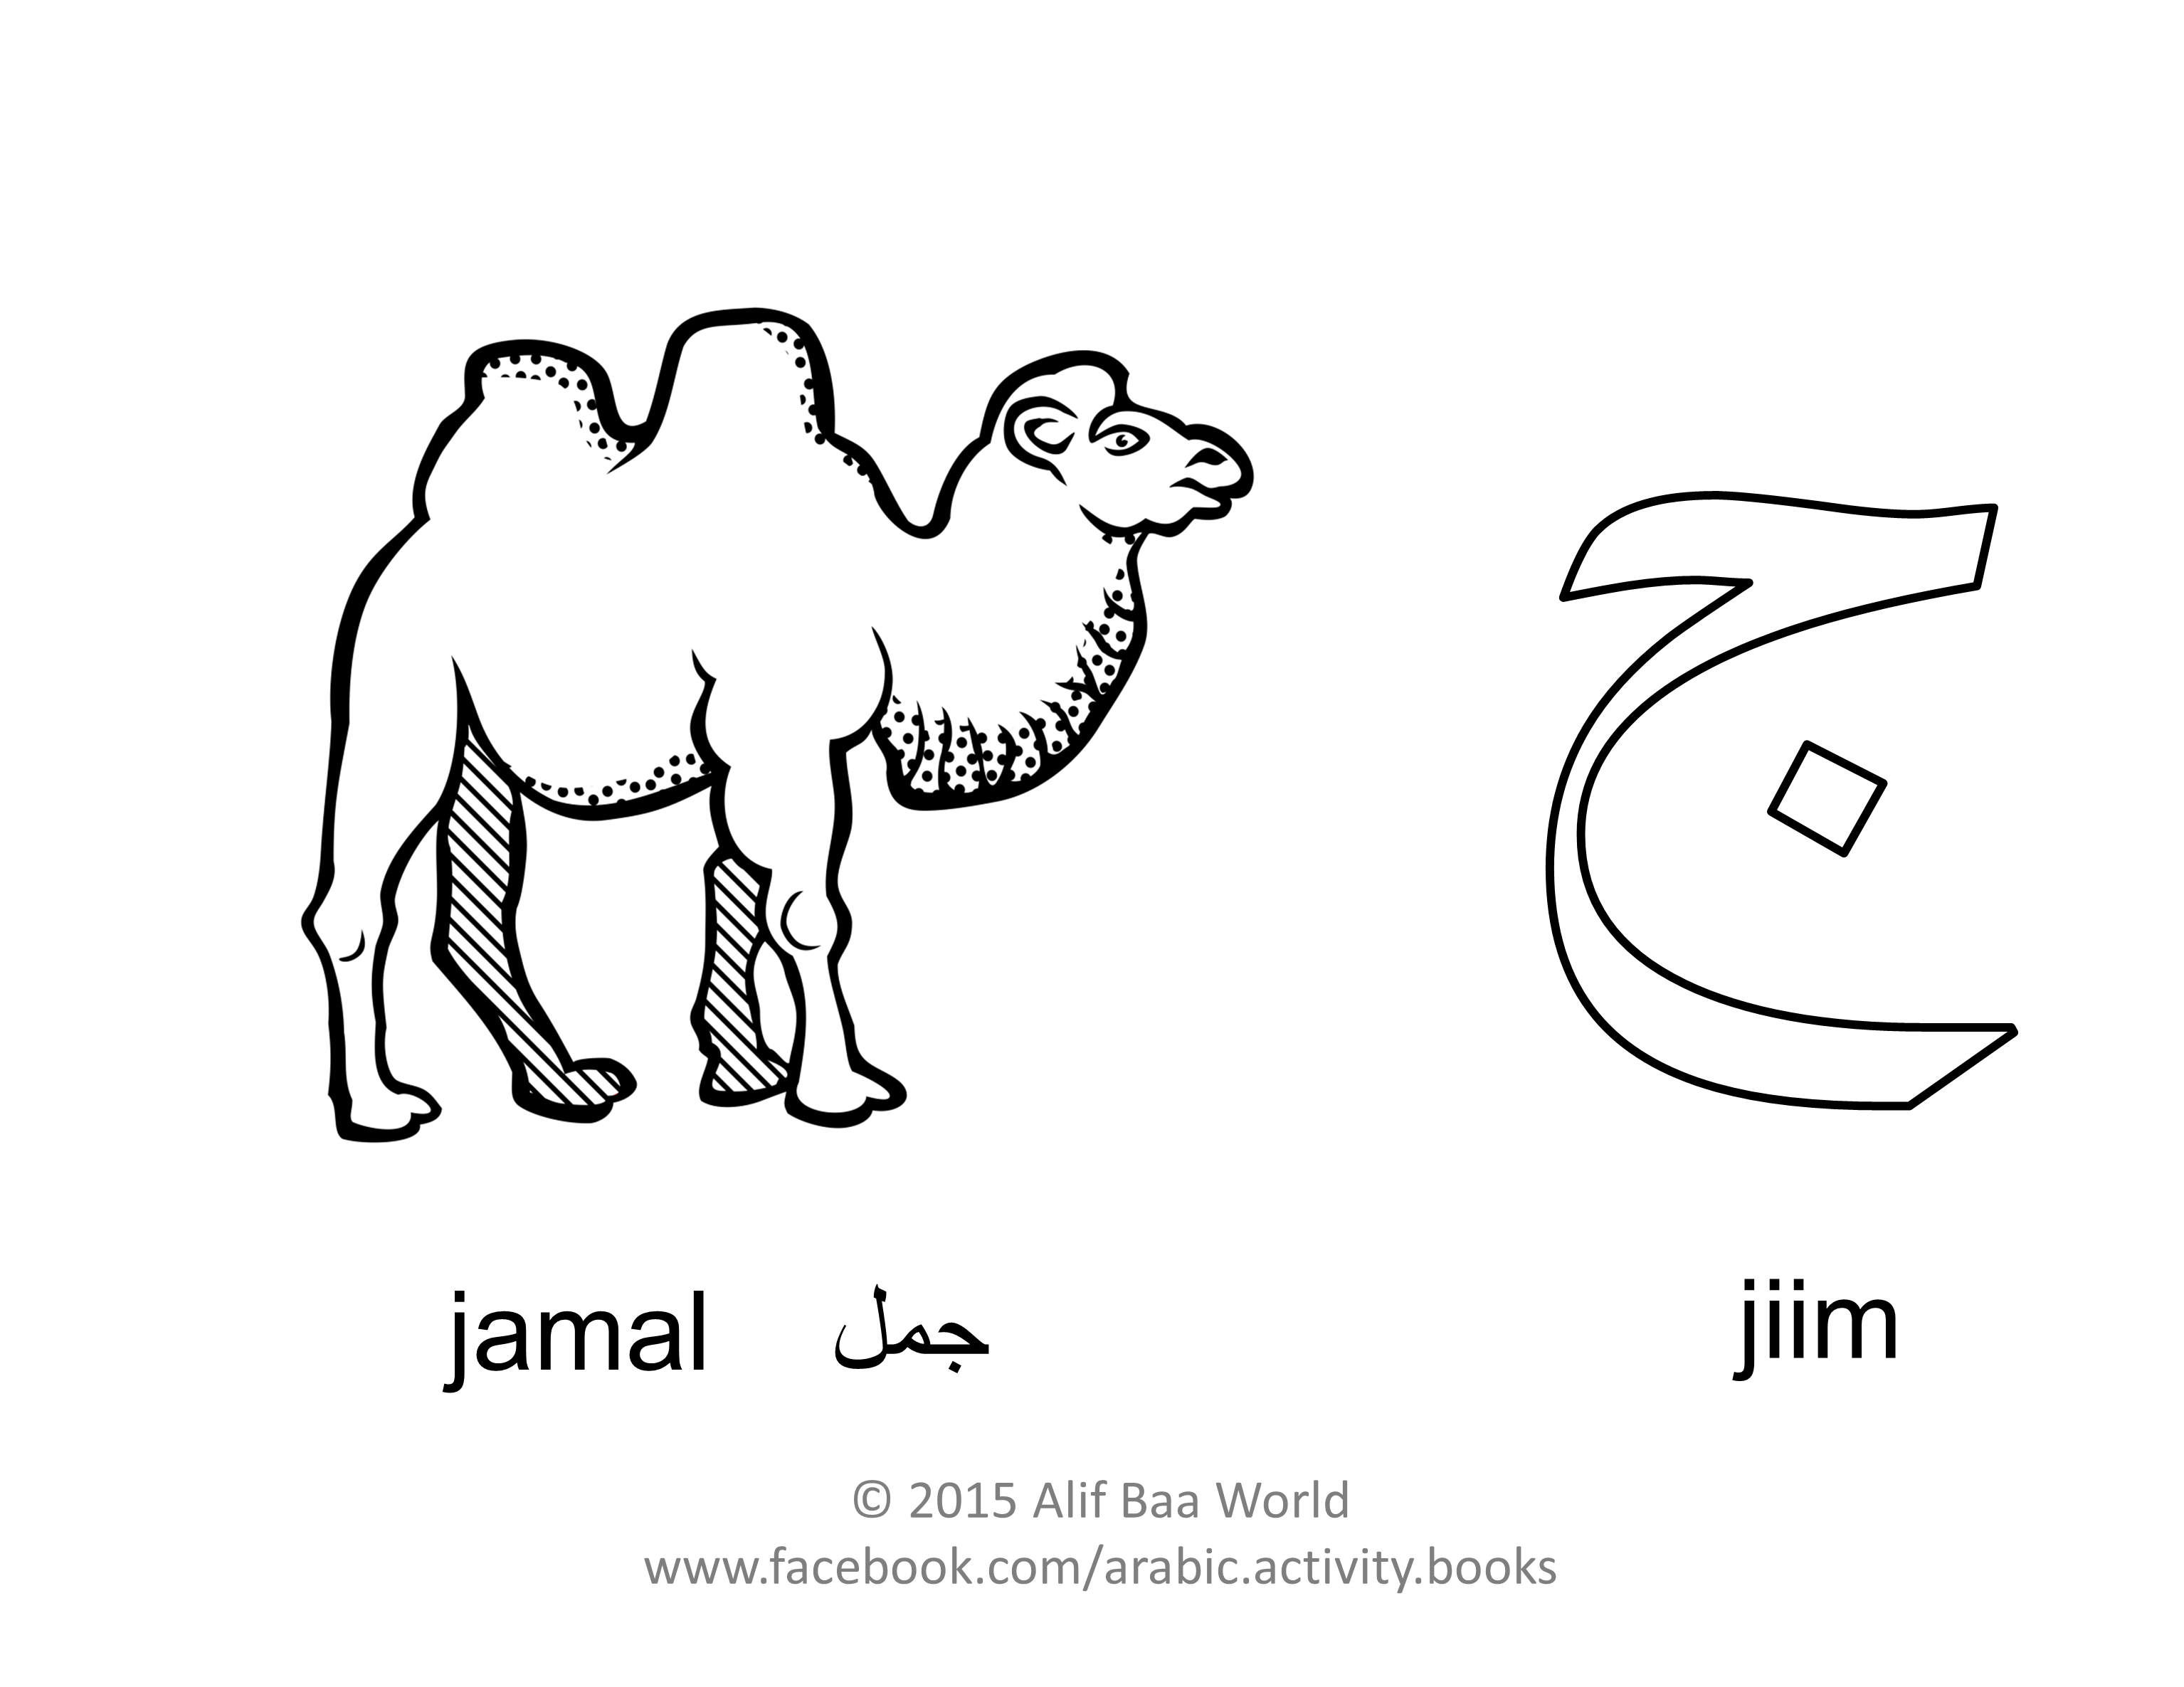 The Fifth Letter Of Arabic Alphabet Is Name Jiim